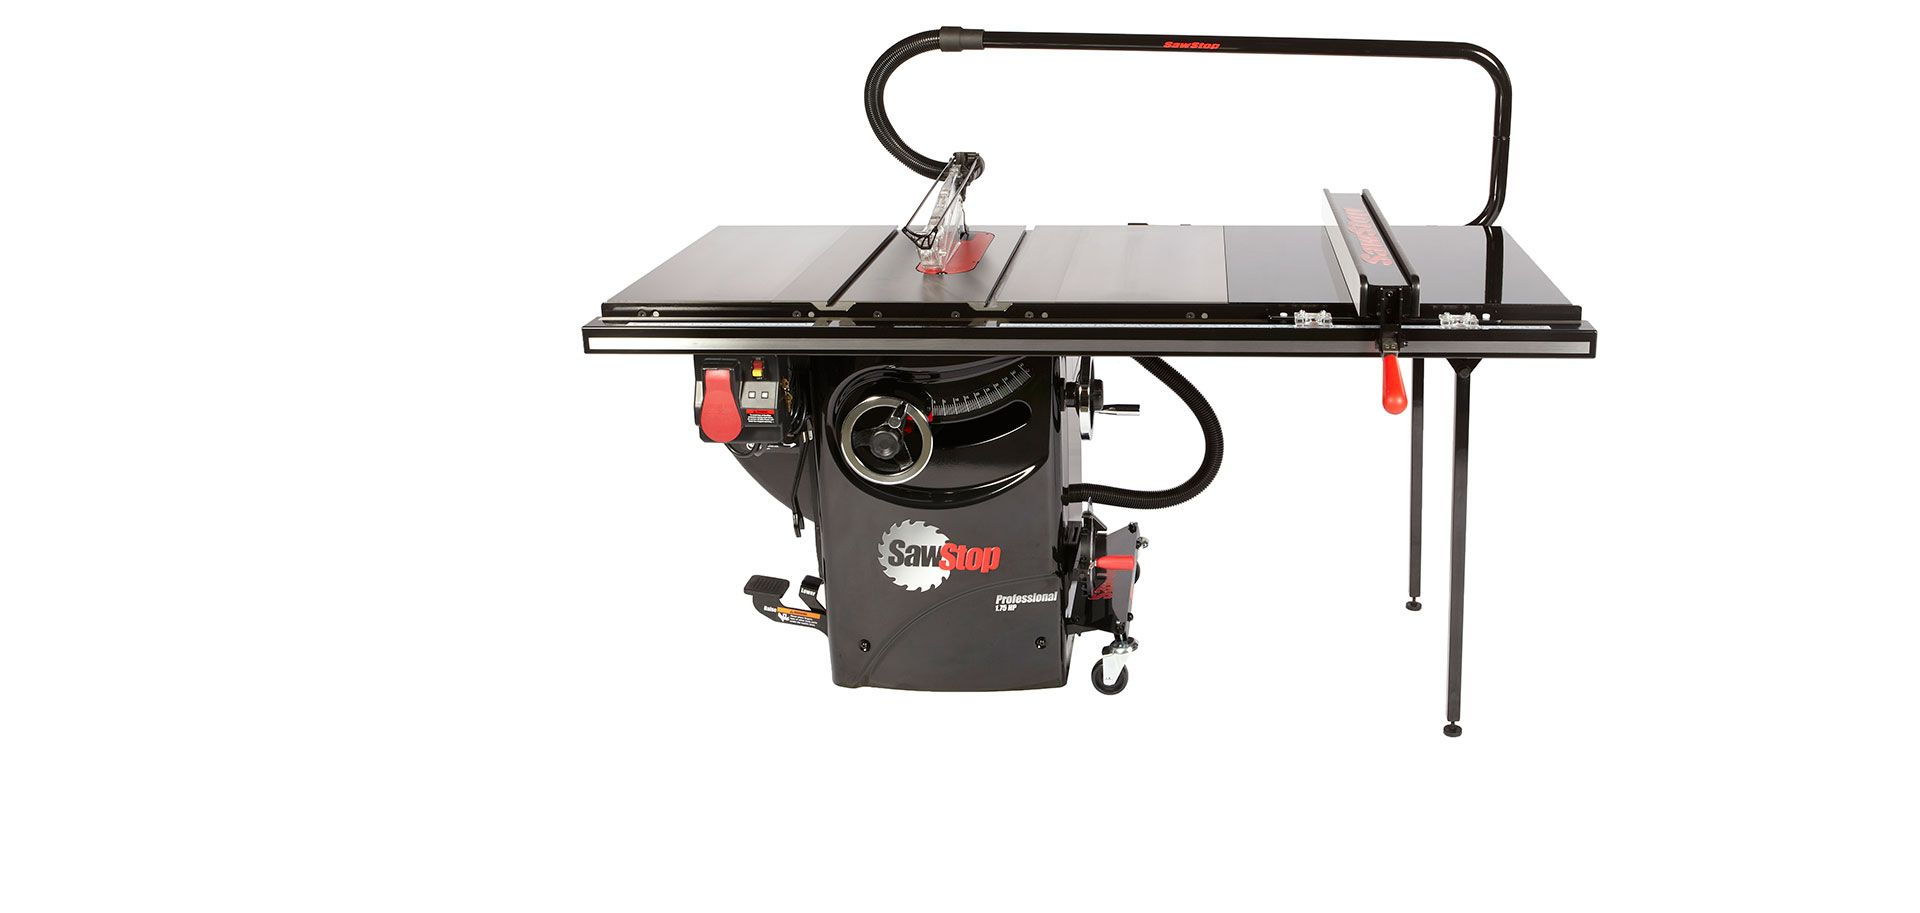 Build And Price Your Sawstop Table Saw Today Sawstop Table Saw Woodworking Table Saws